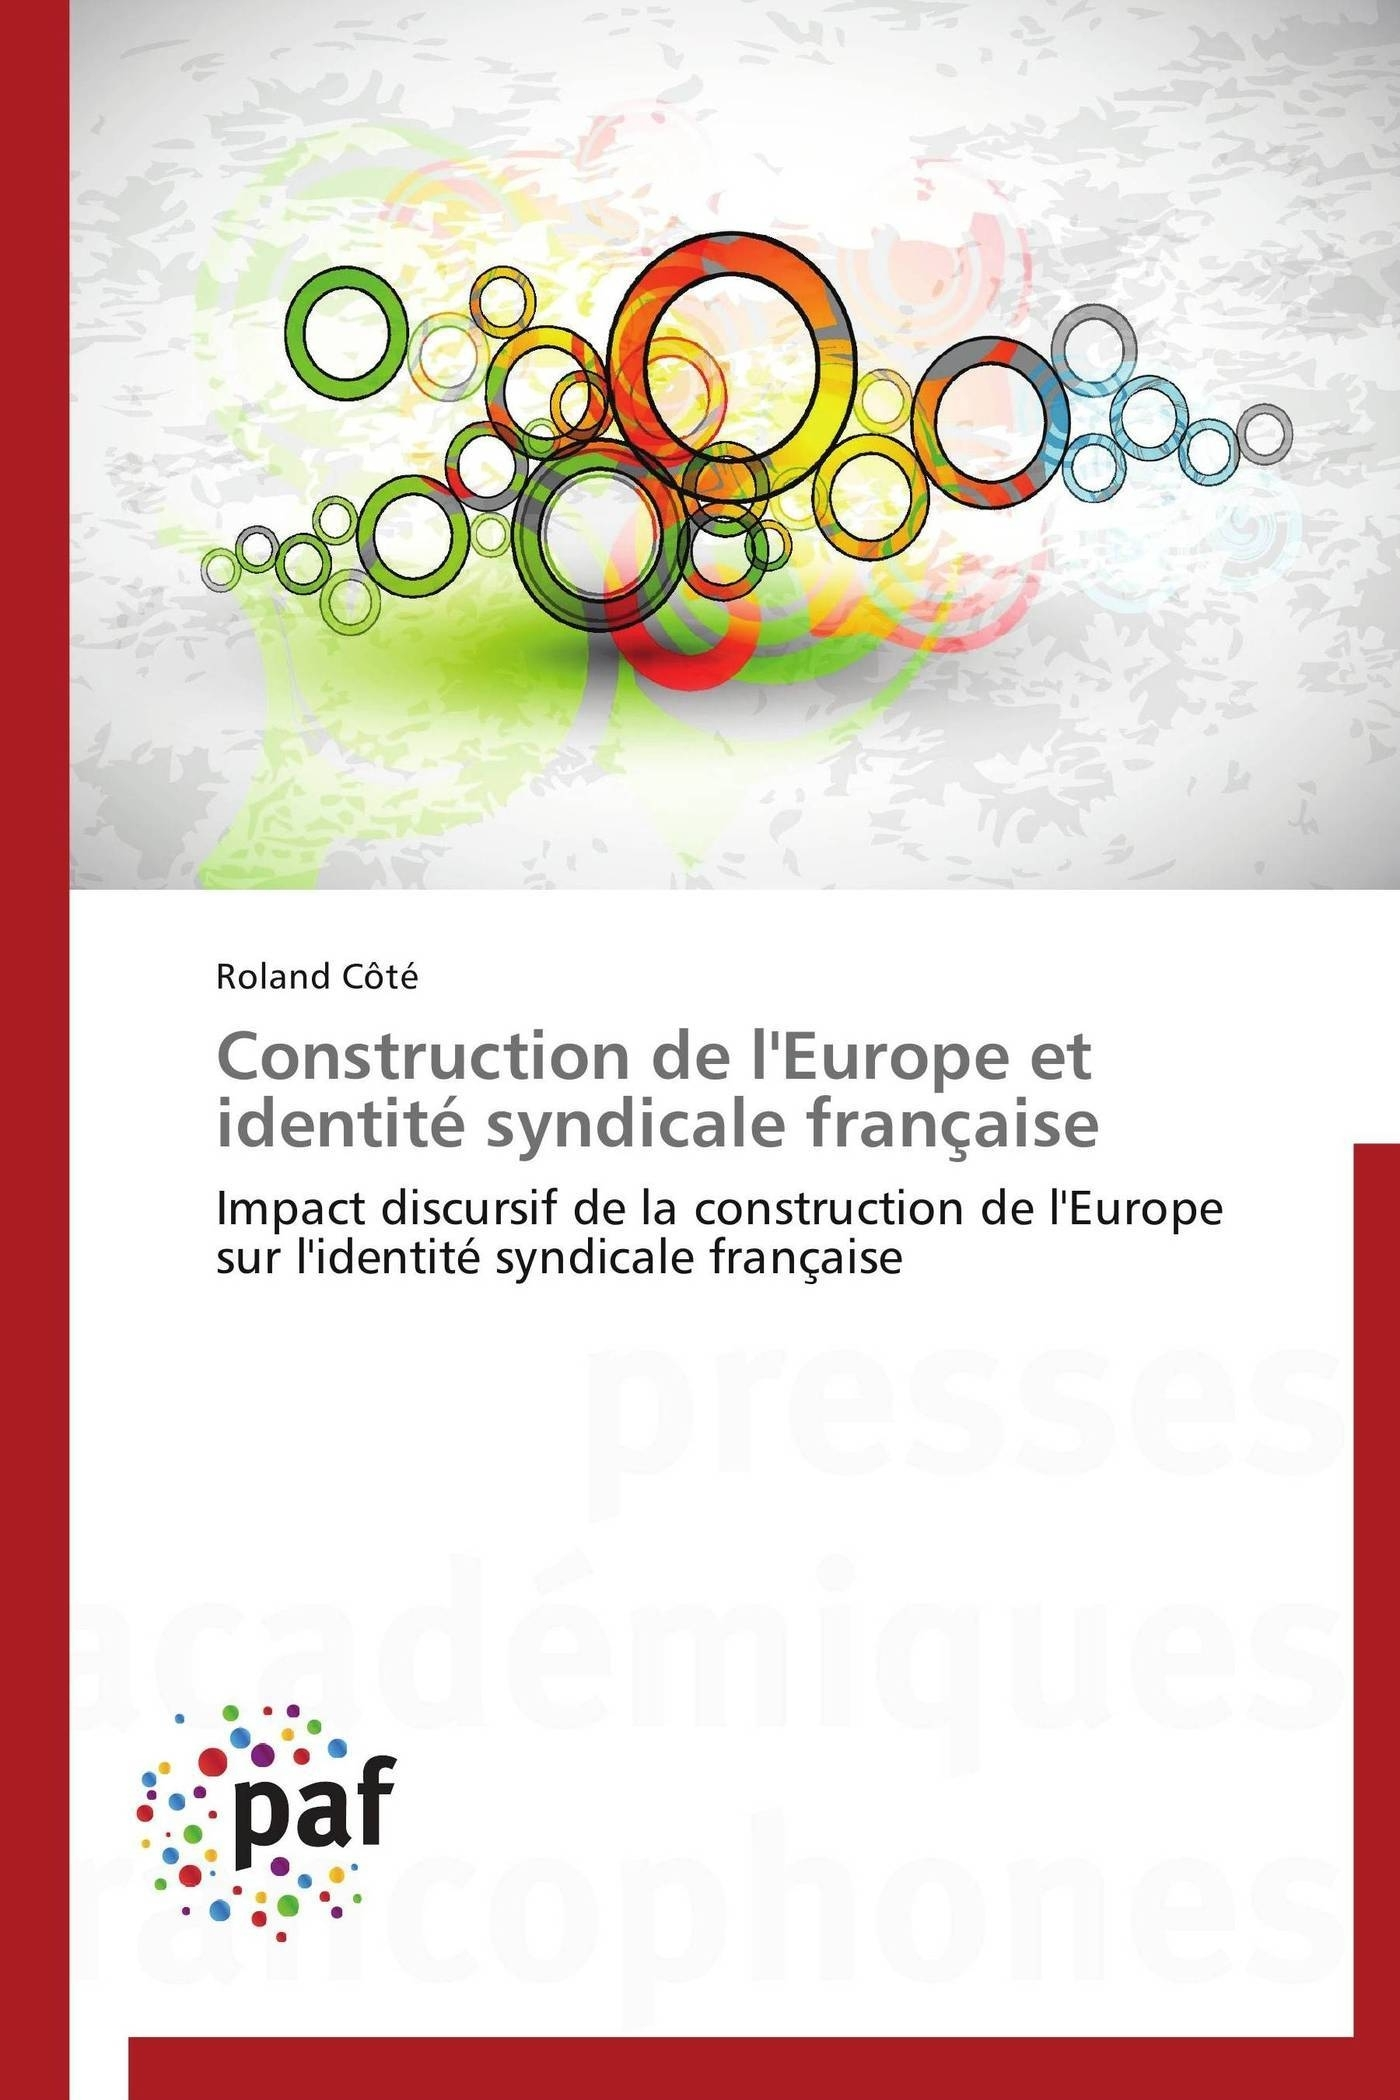 CONSTRUCTION DE L'EUROPE ET IDENTITE SYNDICALE FRANCAISE